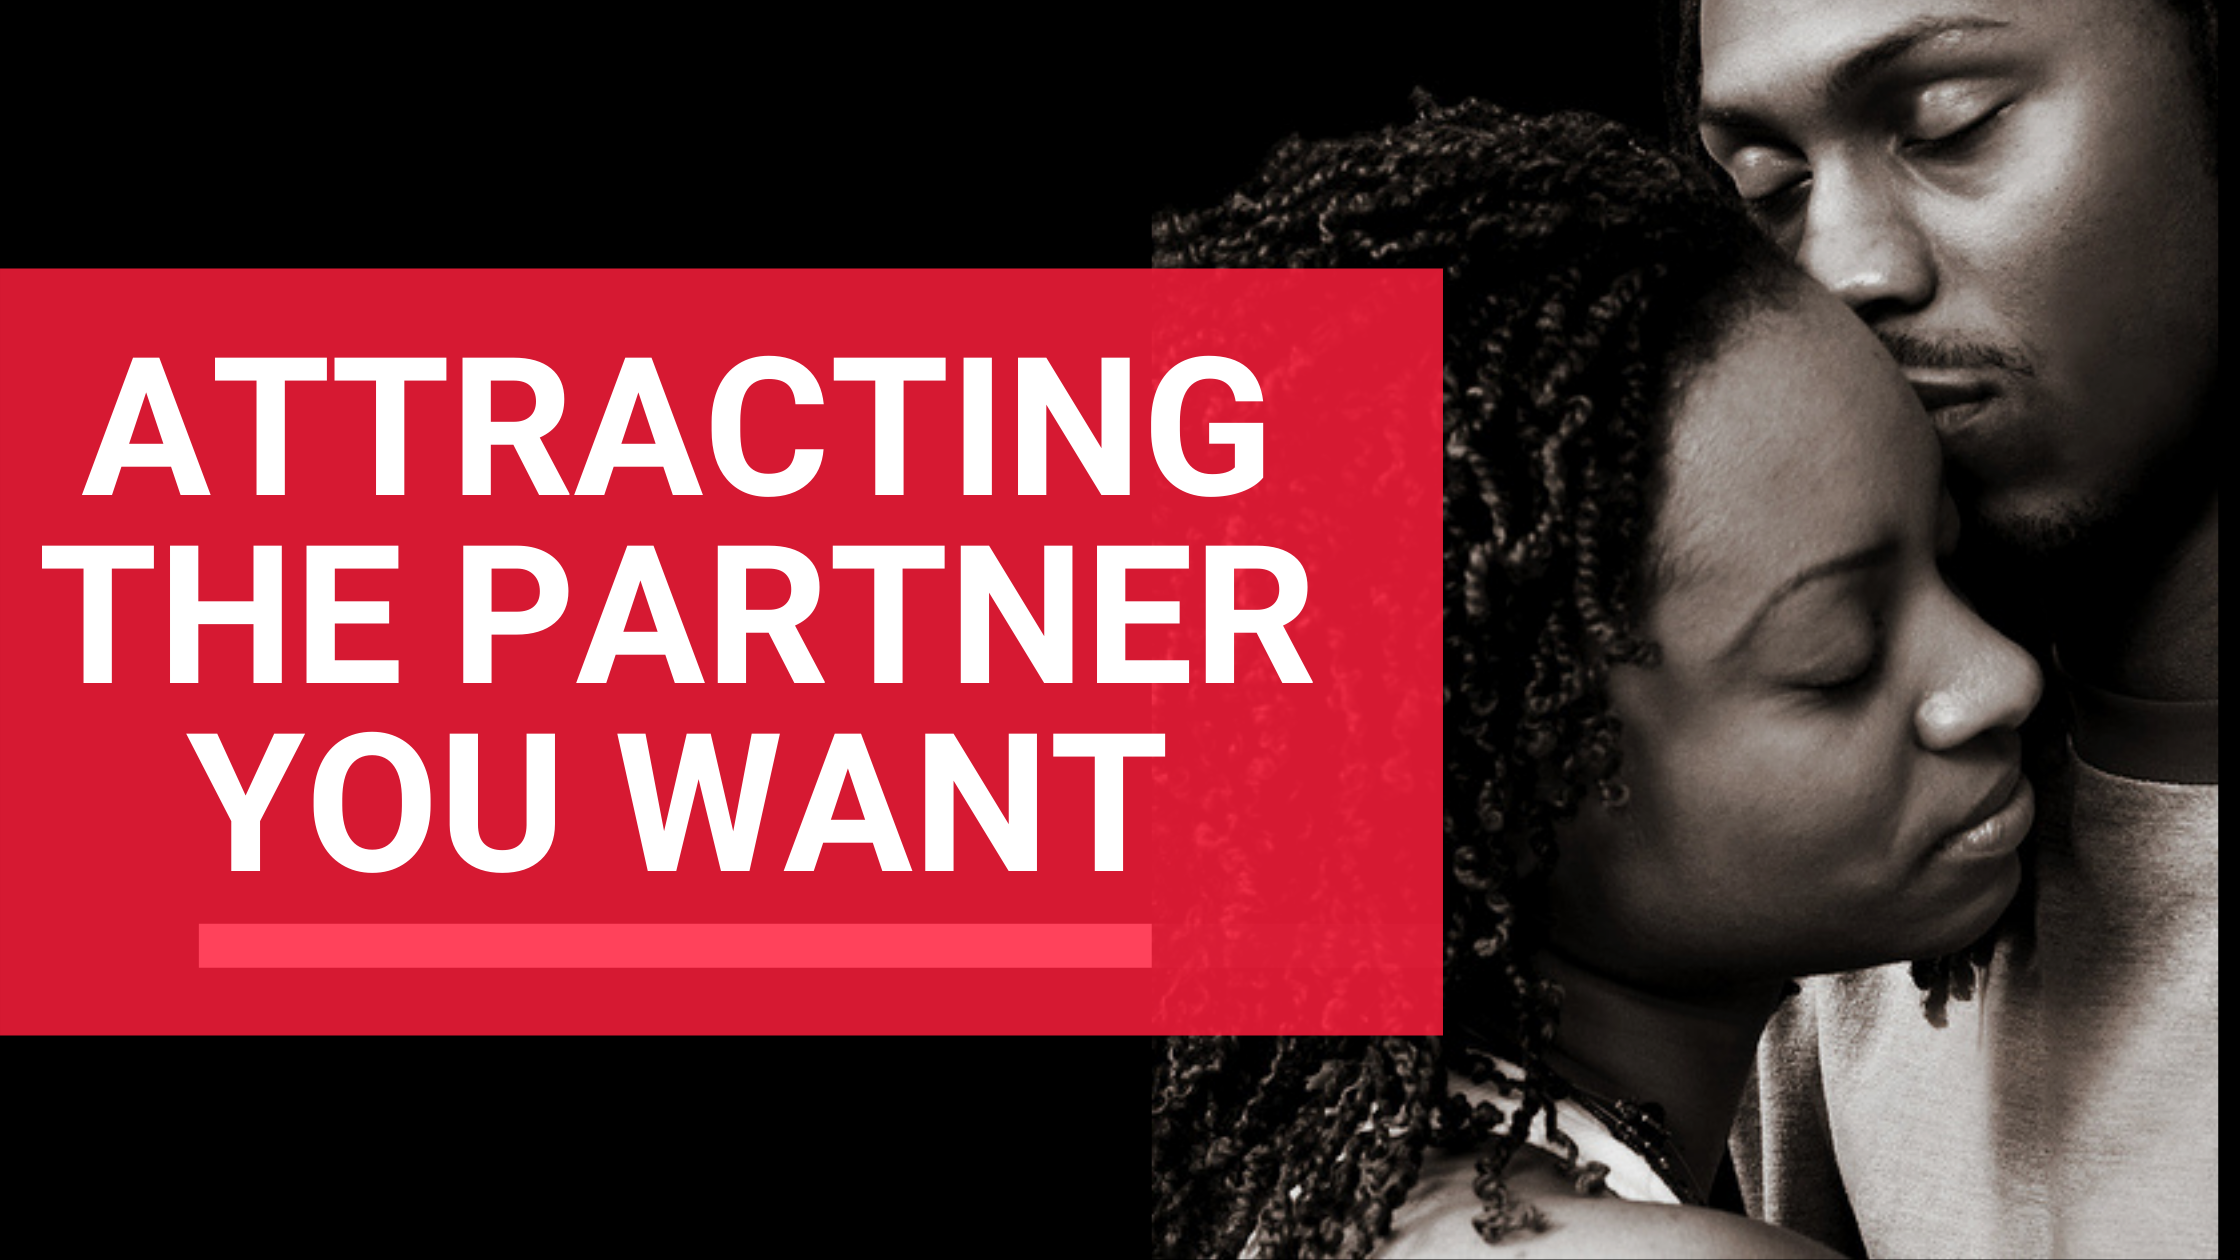 So, what is a Power Mate? A Power Mate is a partner that is designed to complement your existing lifestyle and one who you develop a spiritual, mental and emotional connection with as well as that unexplainable chemistry. The traditional principles of how to choose the right life partner are antiquated and the divorce/singles stats prove it. This article will teach you how to date differently. That you can be intentional about manifesting and attracting the partner you truly desire without compromising who you really are.In this article, we are going to share with you three essential tips that will help you attract your Powermate. These are absolutely a must-do.